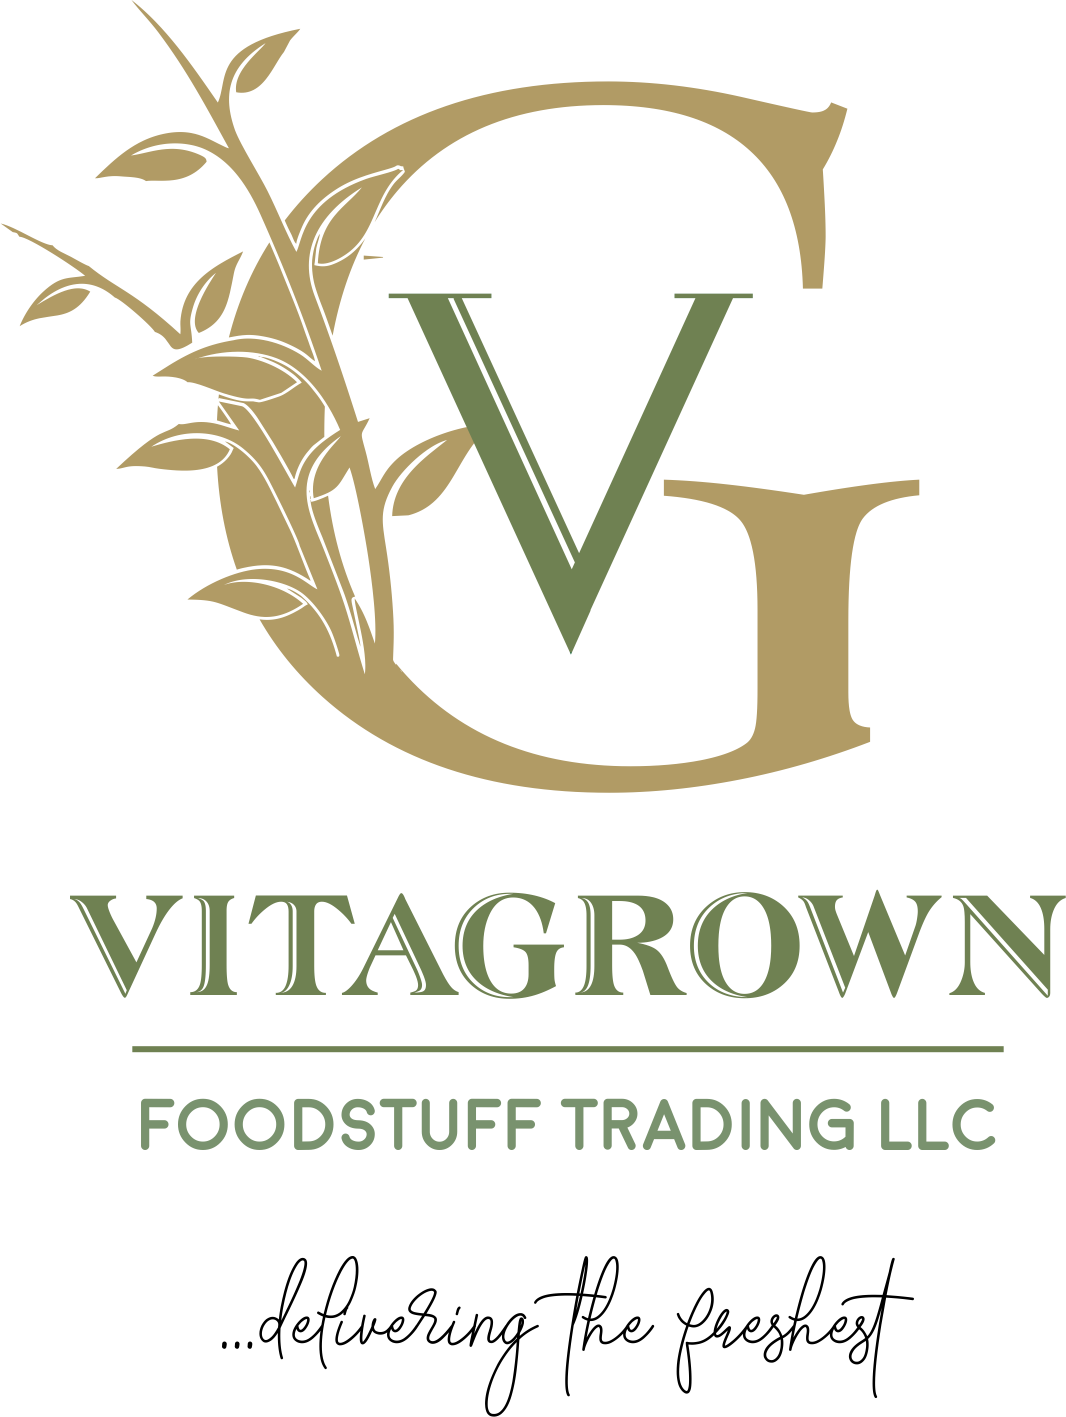 Vitagrown logo